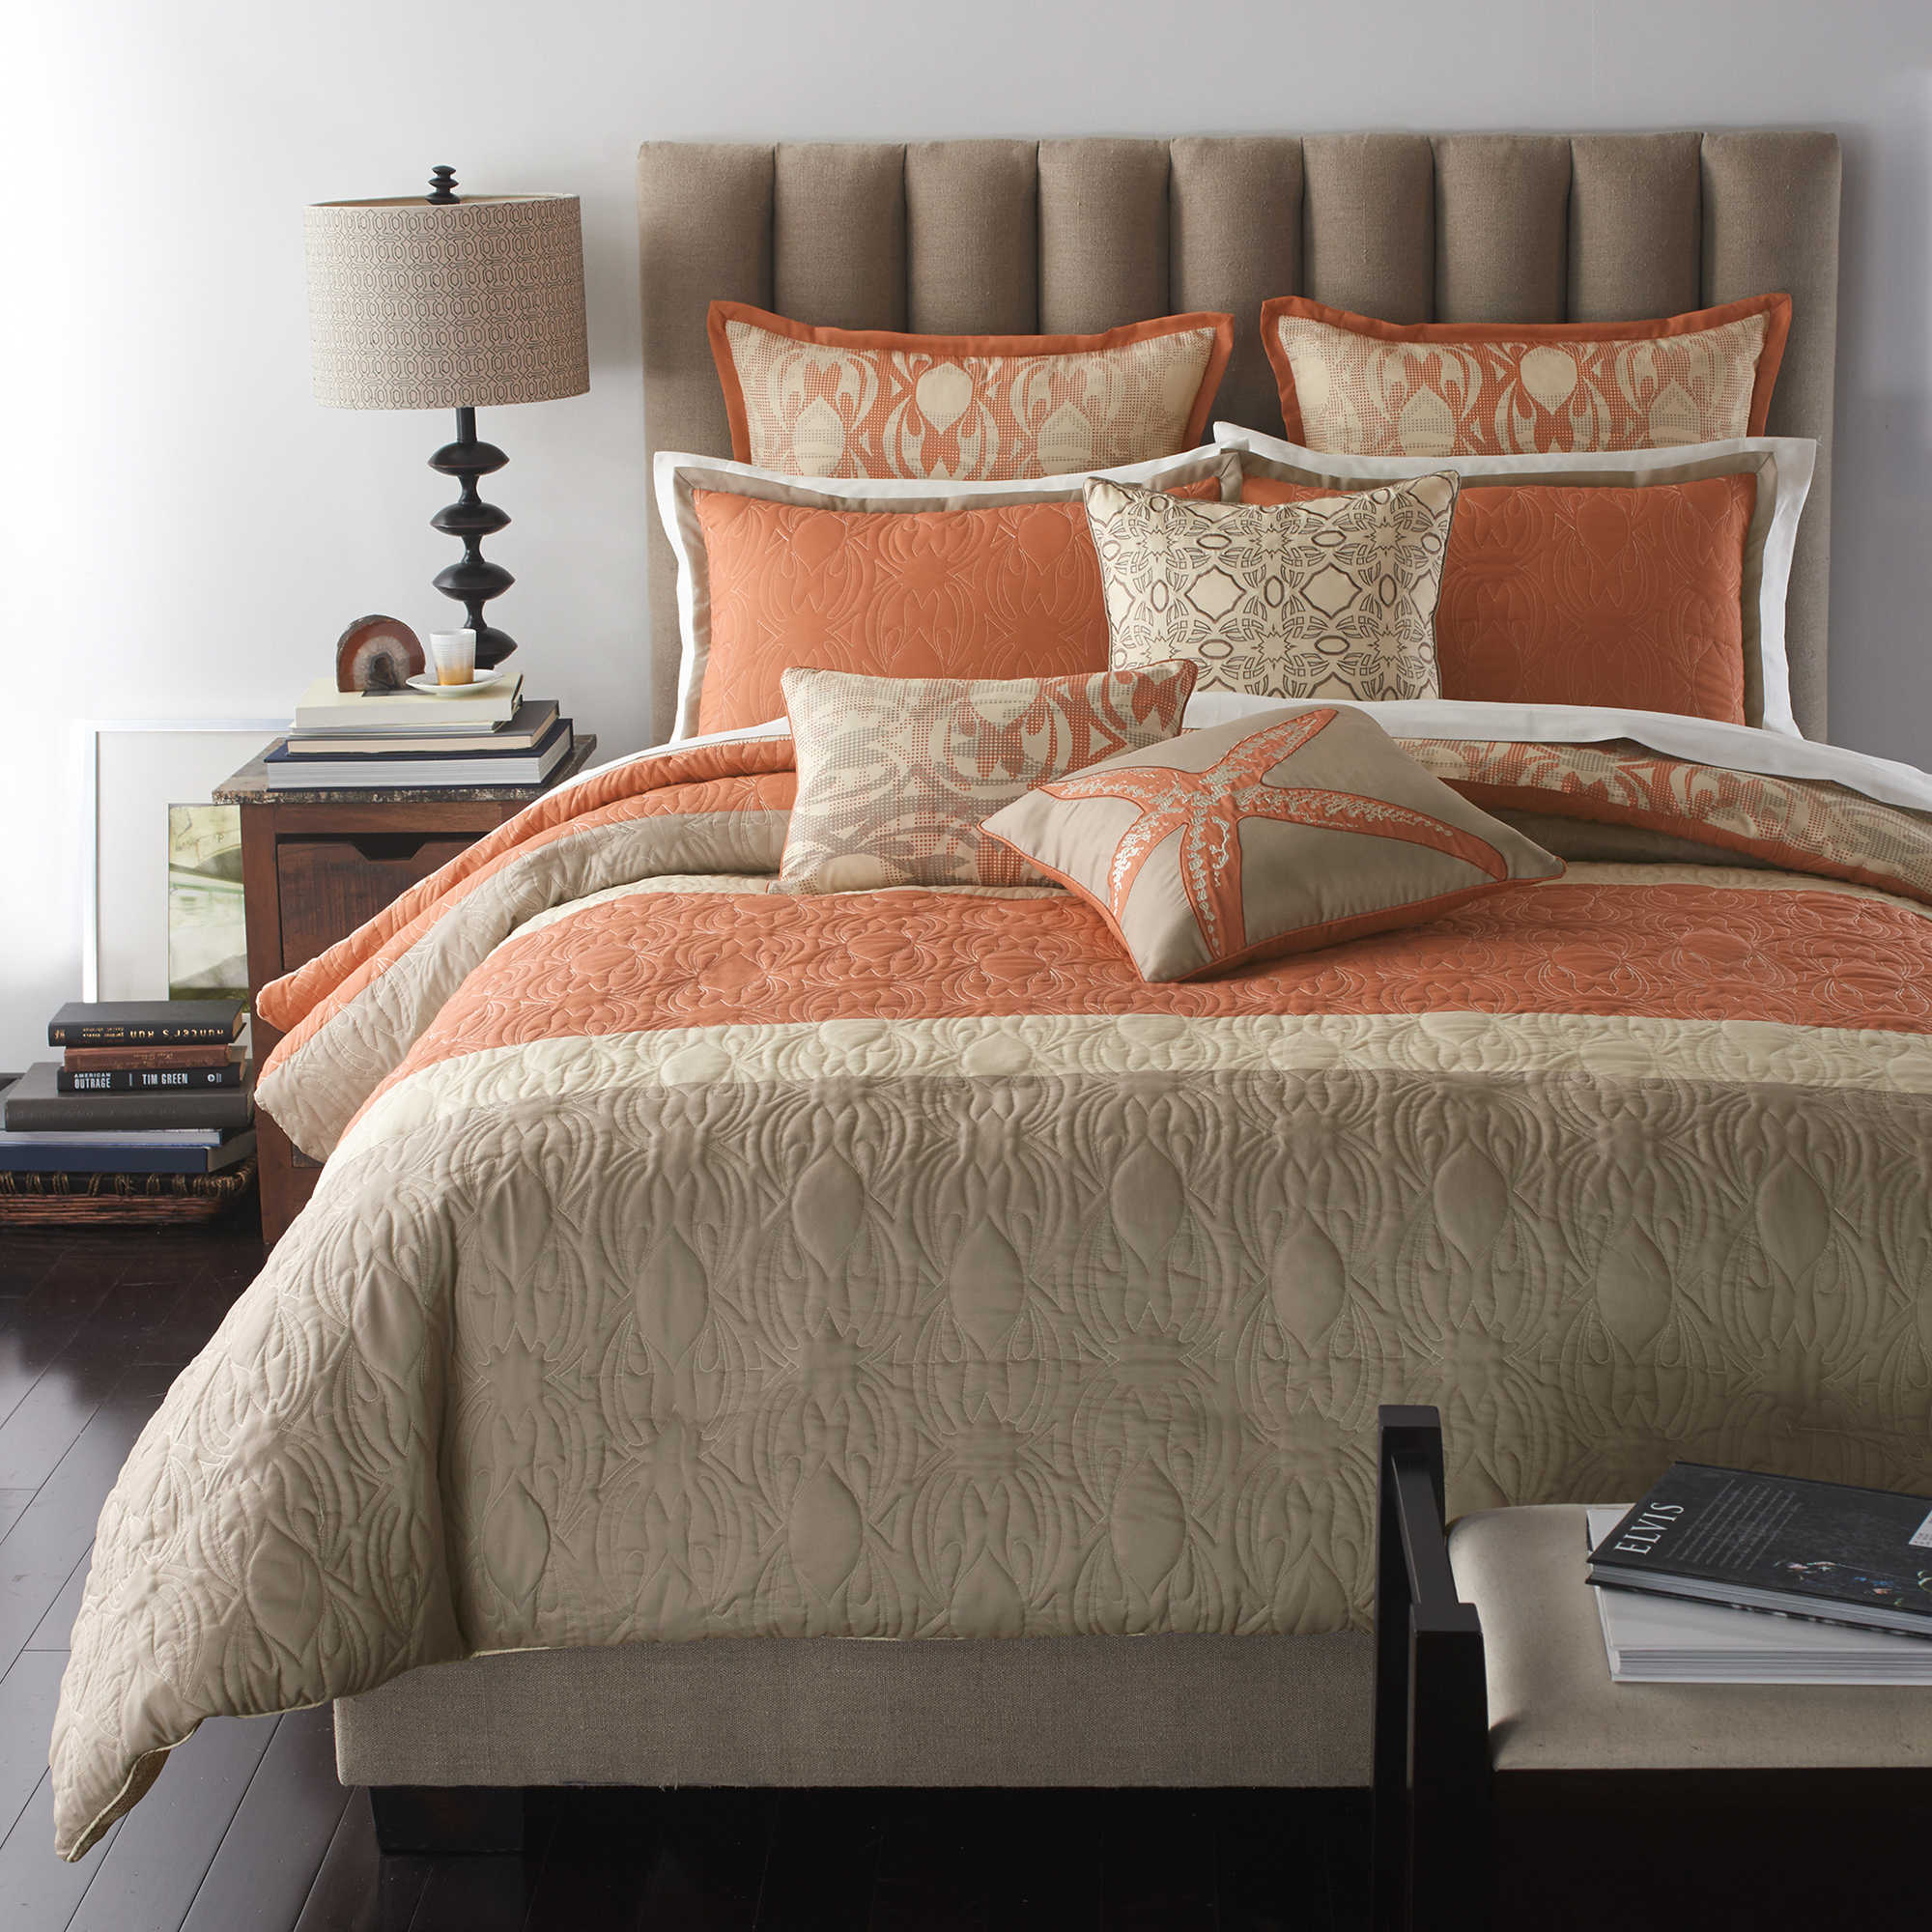 Jcpenney Bedspreads | Daybed Comforter Sets | Queen Bedspreads